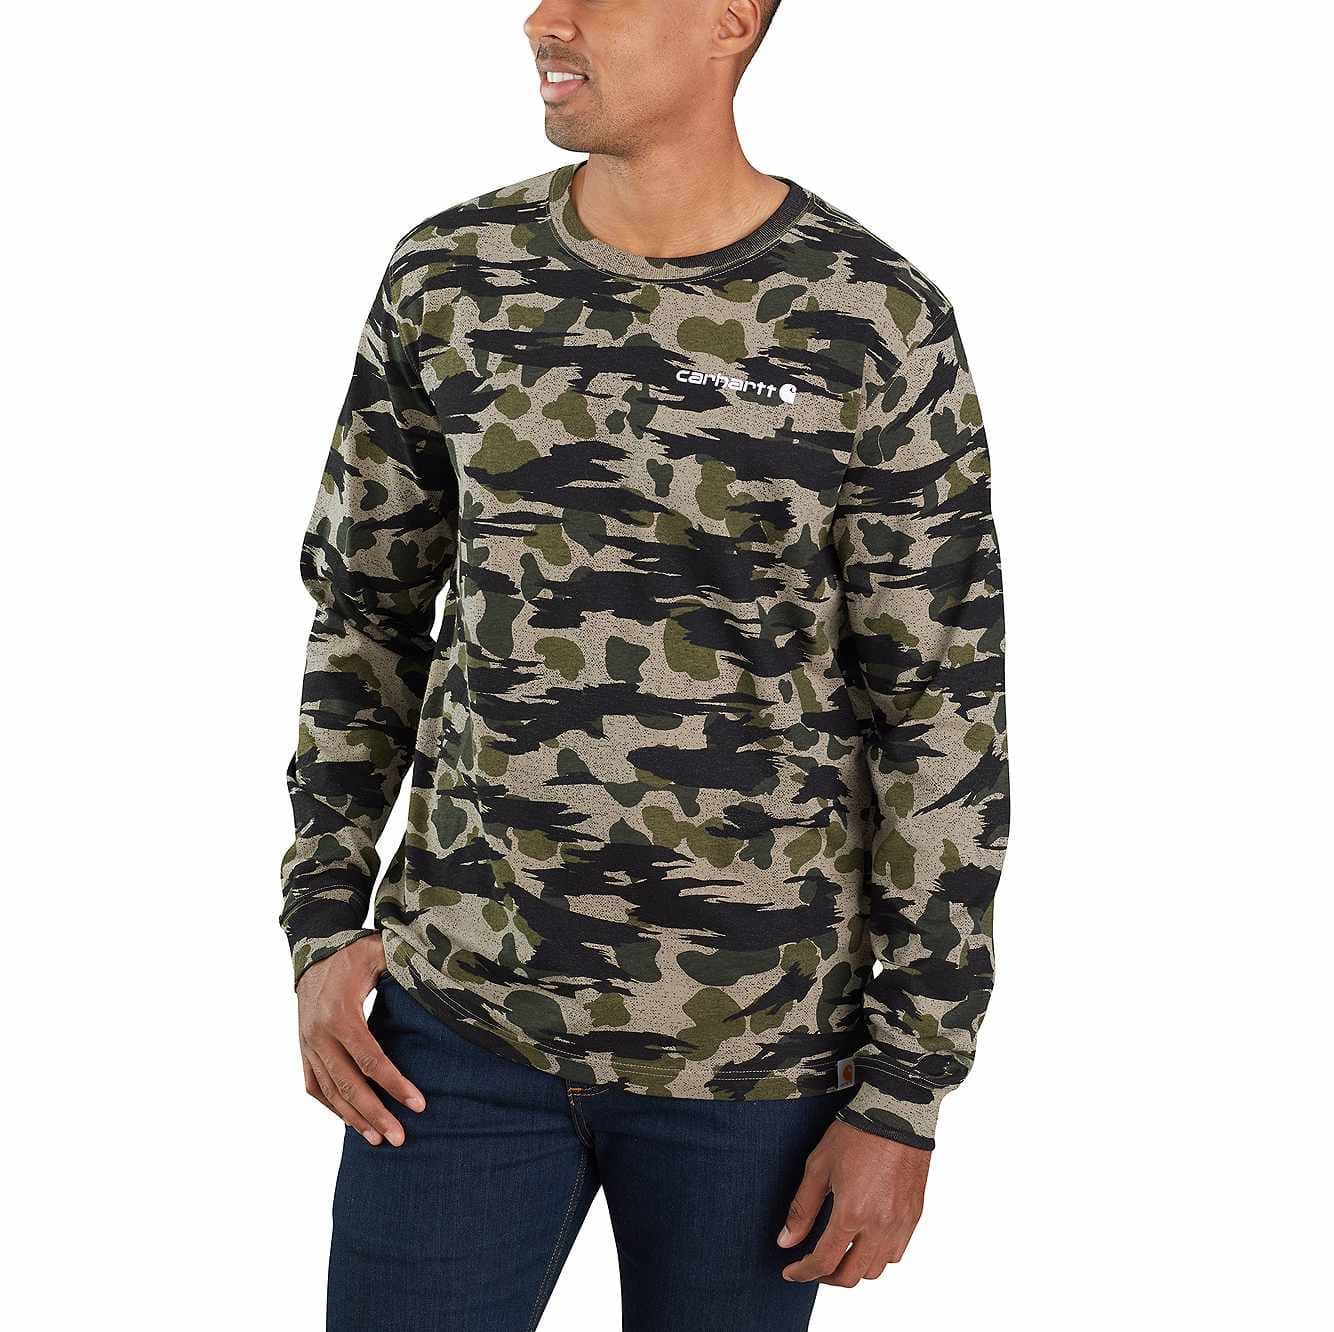 Picture of RELAXED FIT HEAVYWEIGHT LONG-SLEEVE CAMO LOGO GRAPHIC T-SHIRT